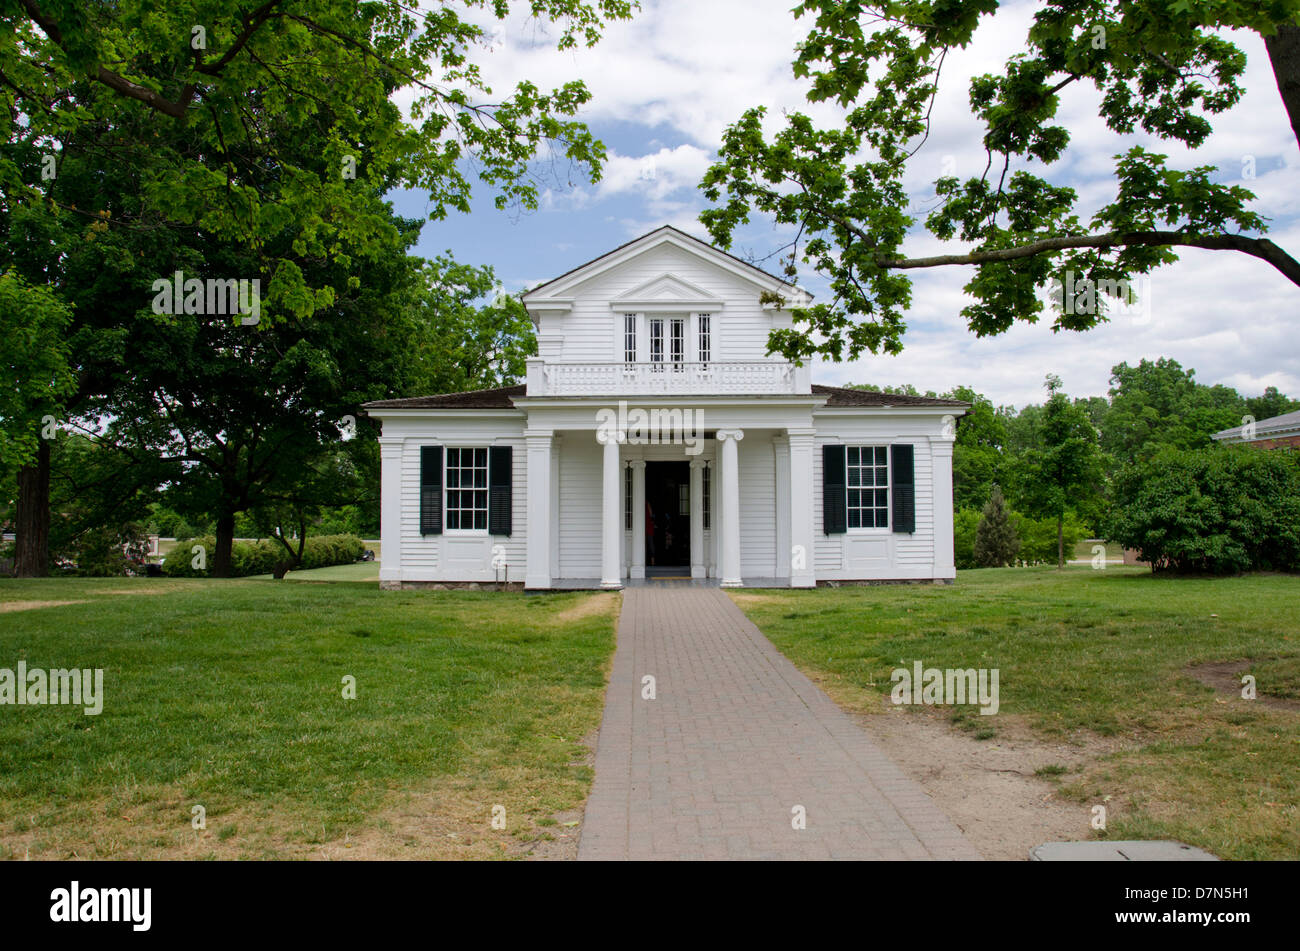 Michigan, Wyandotte. Greenfield Village. Poet Robert Frost's Home, c. 1835, built in Ann Arbor, Michigan. Stock Photo